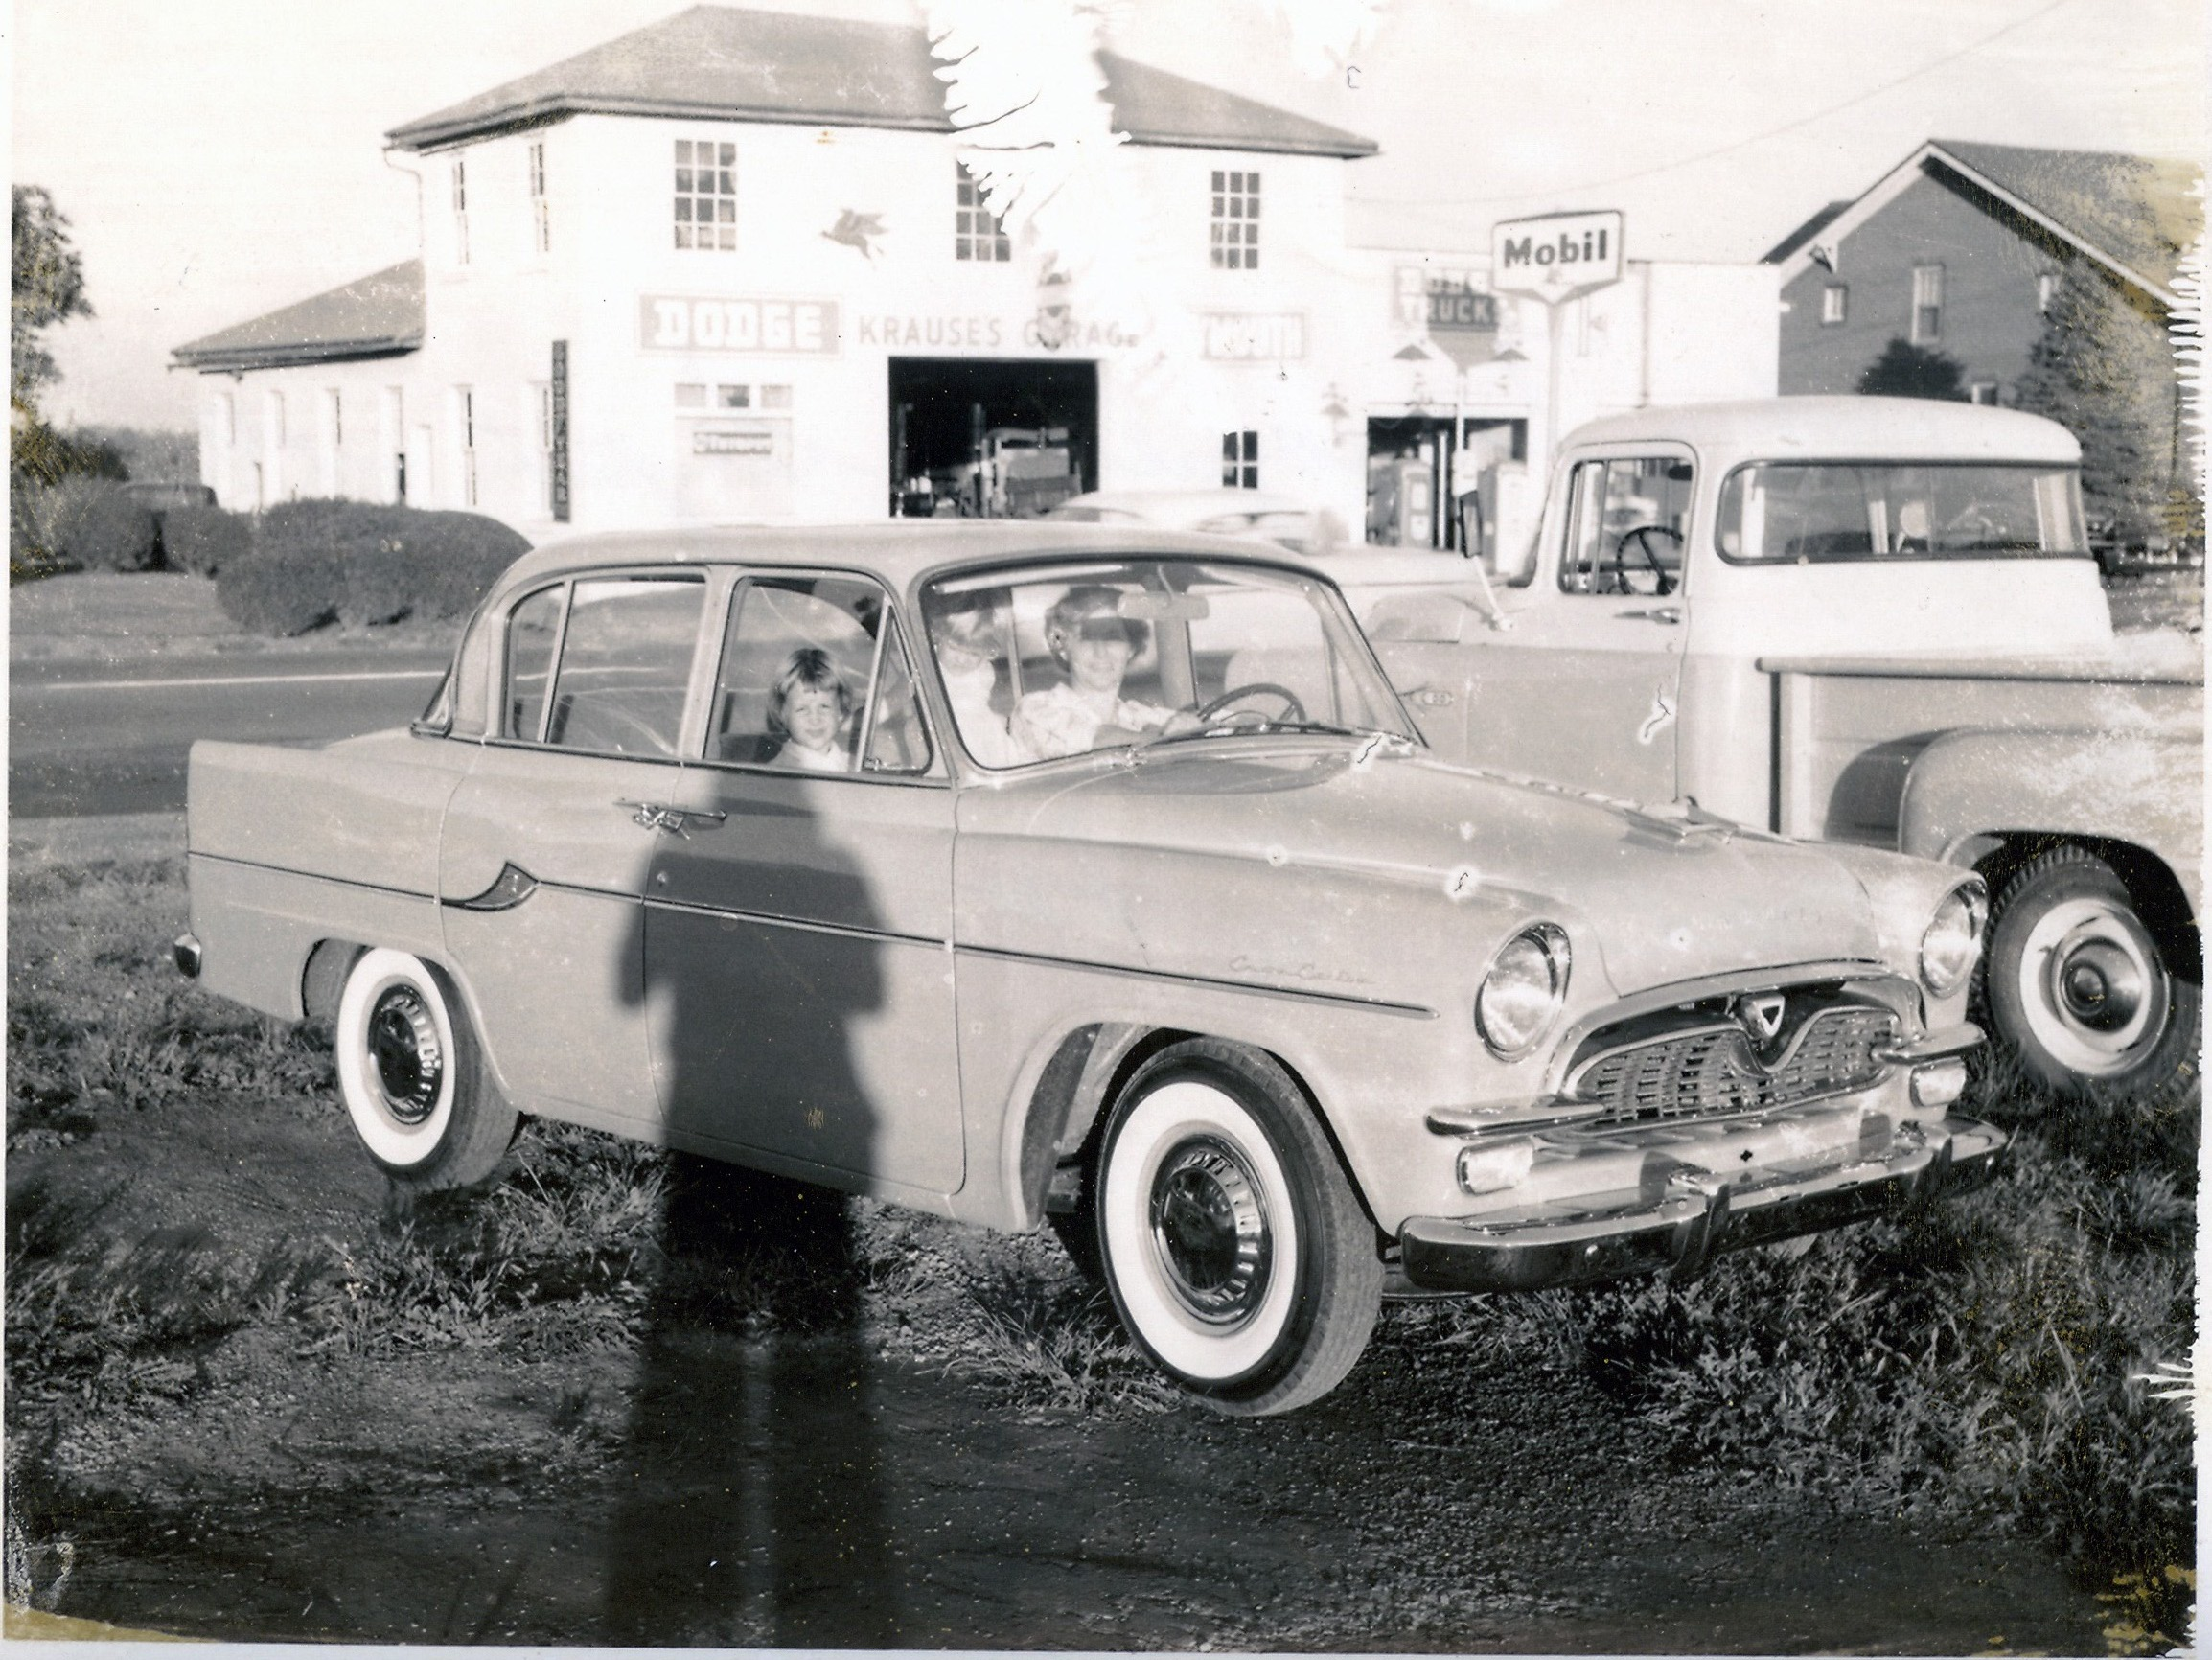 Betty Krause in one of the first Toyopets - 1959 - Krause Toyota